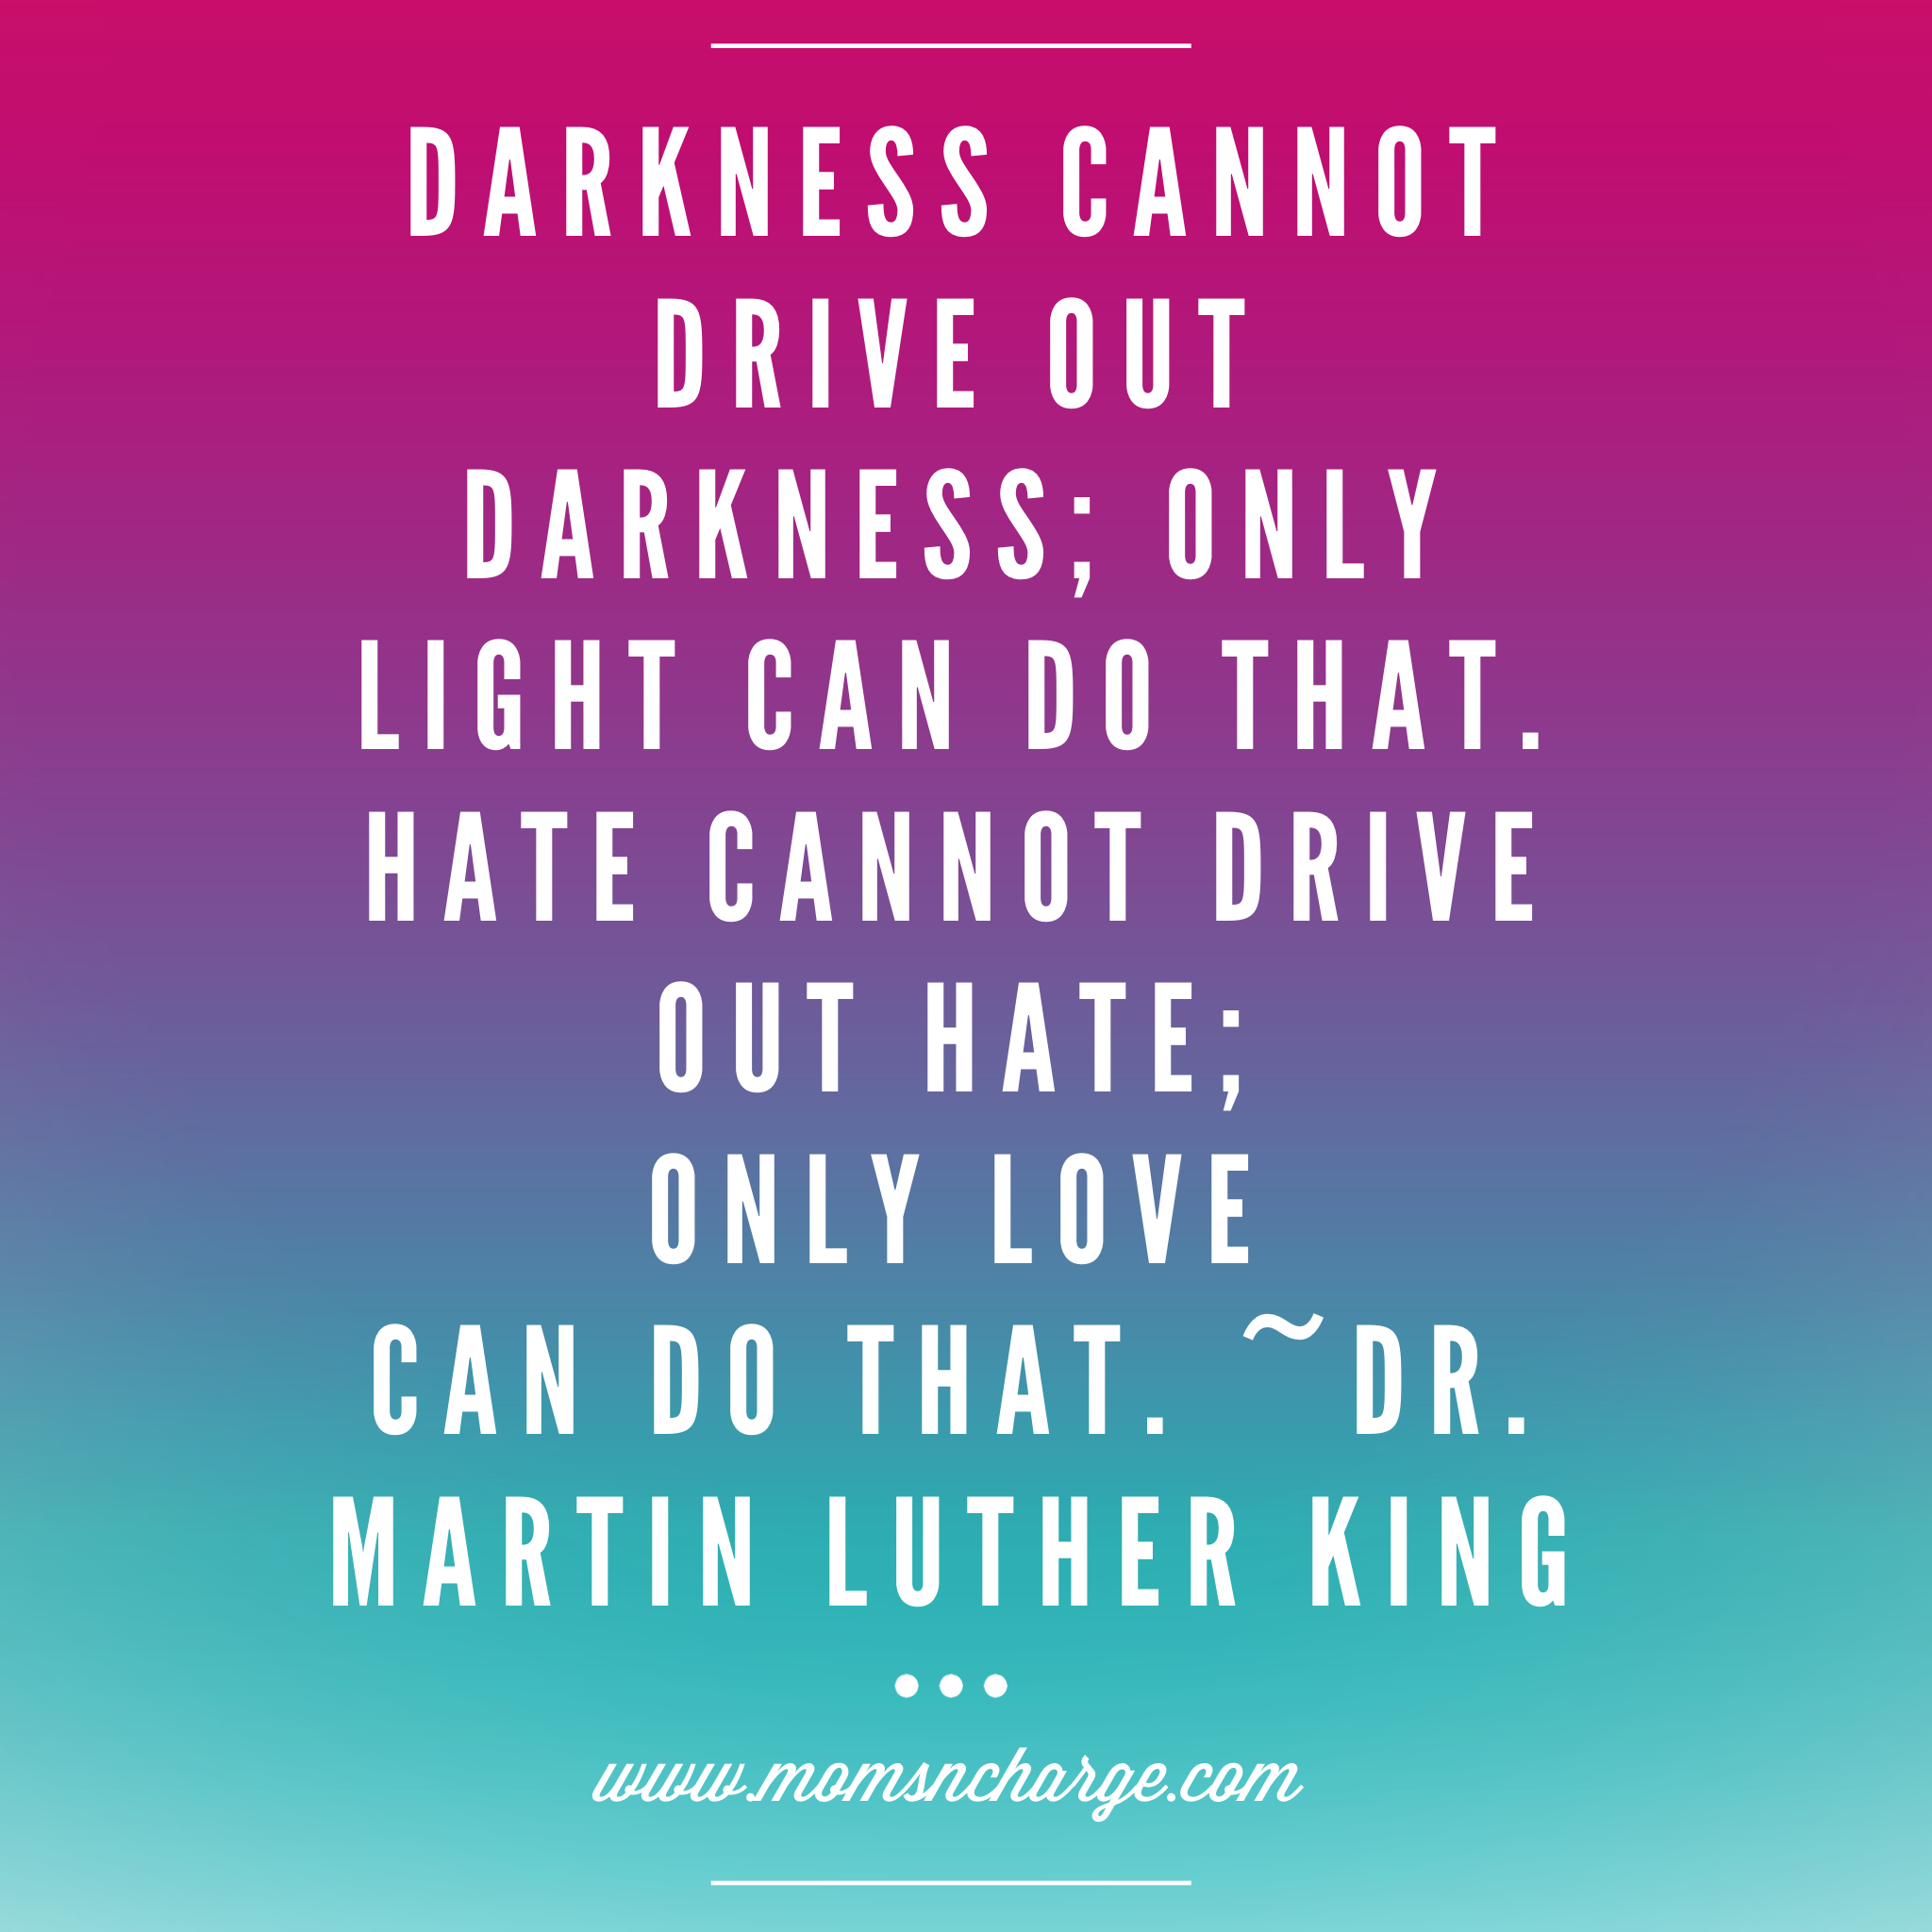 5 Powerful Quotes On Faith From Dr. Martin Luther King, Jr